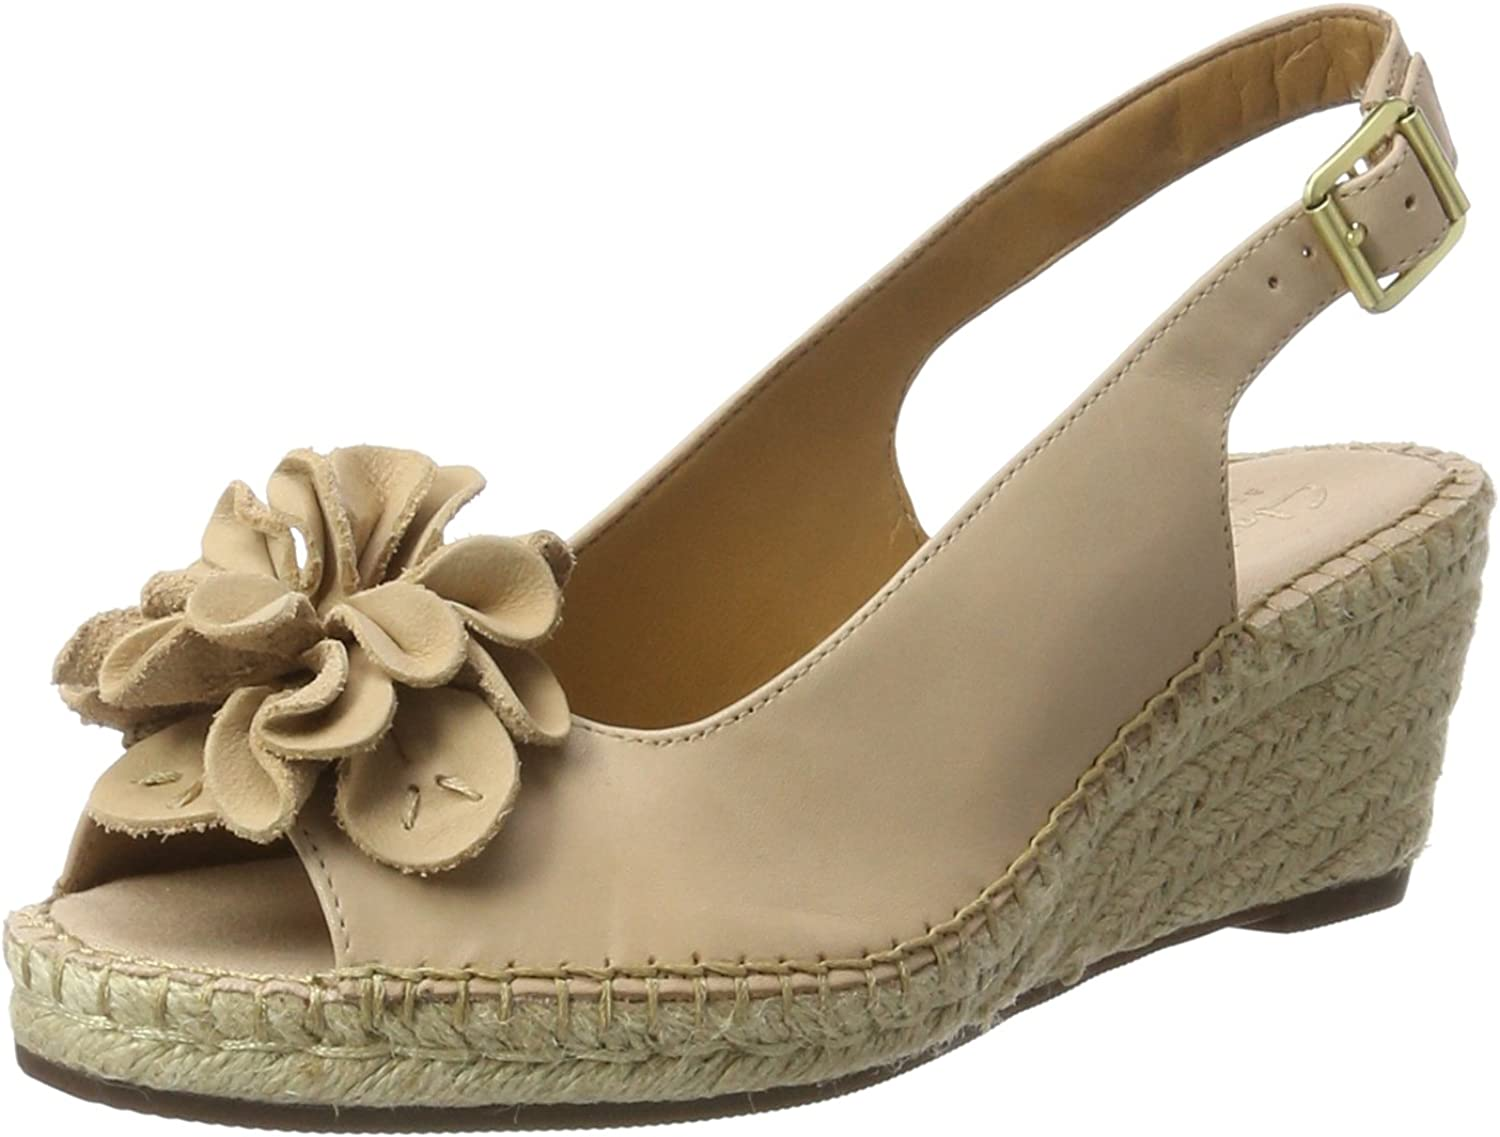 Clarks Petrina white Sandals Nude Leather